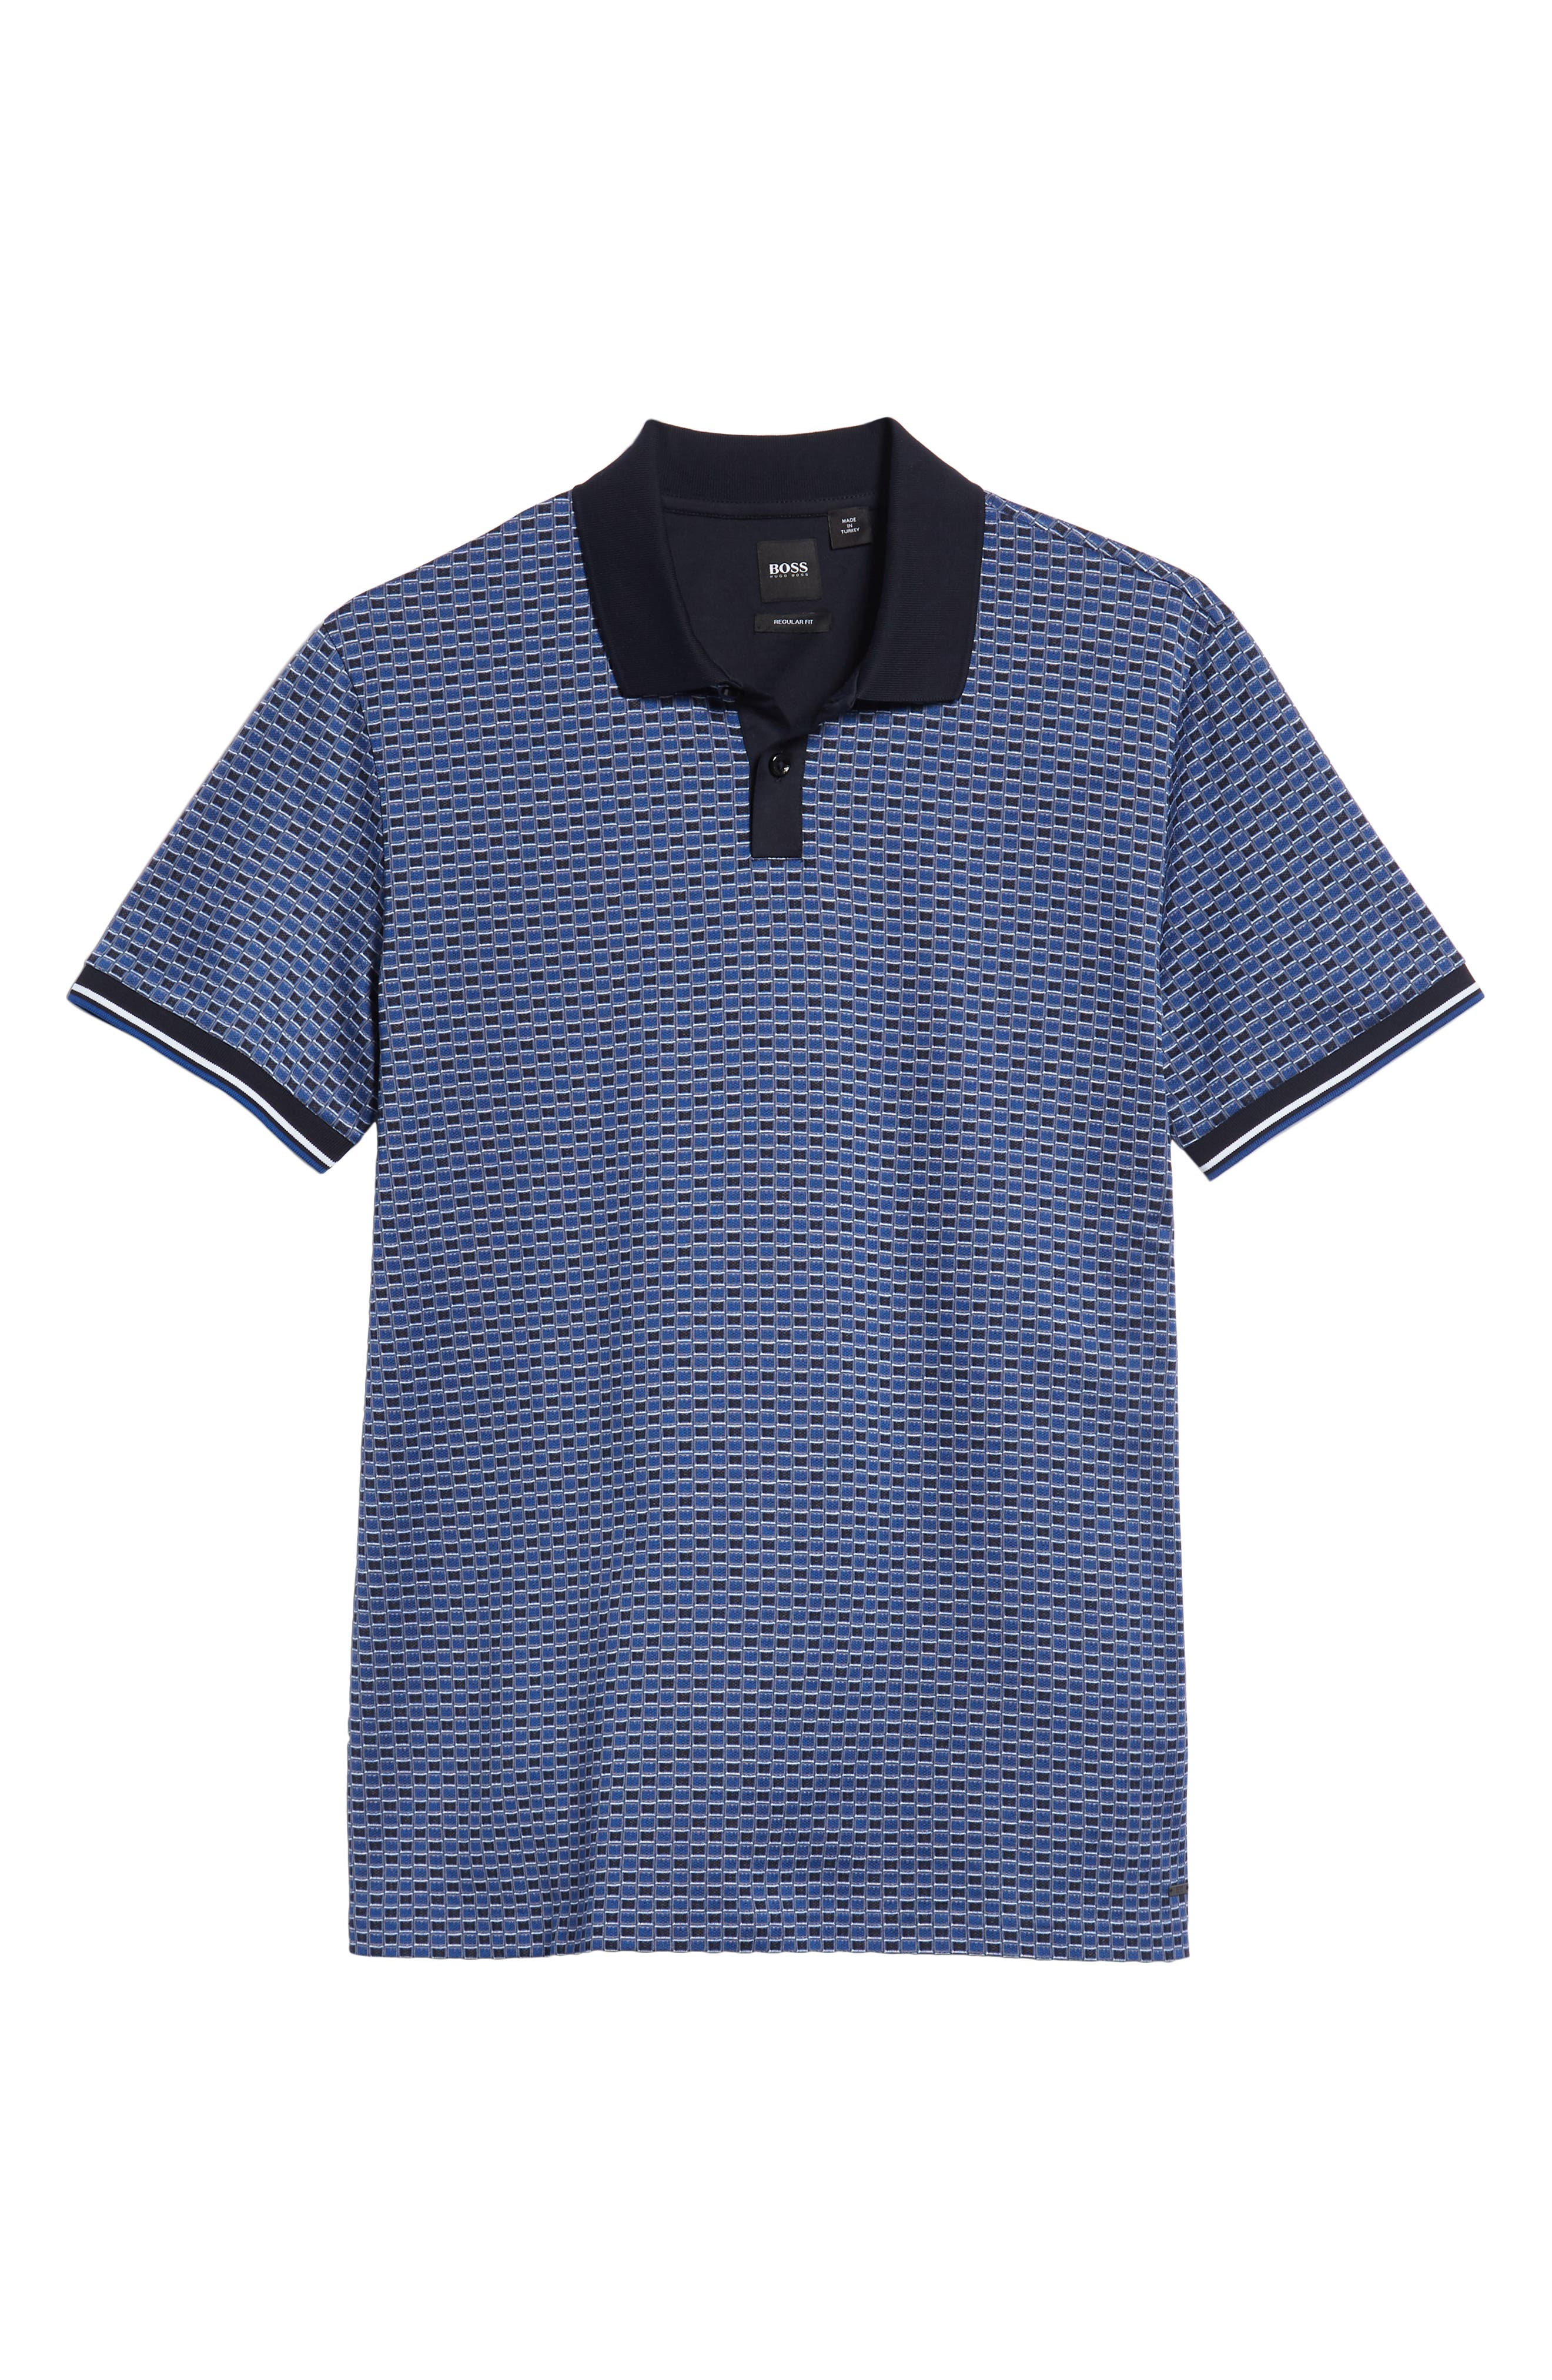 Parlay Regular Fit Polo,                             Alternate thumbnail 6, color,                             474